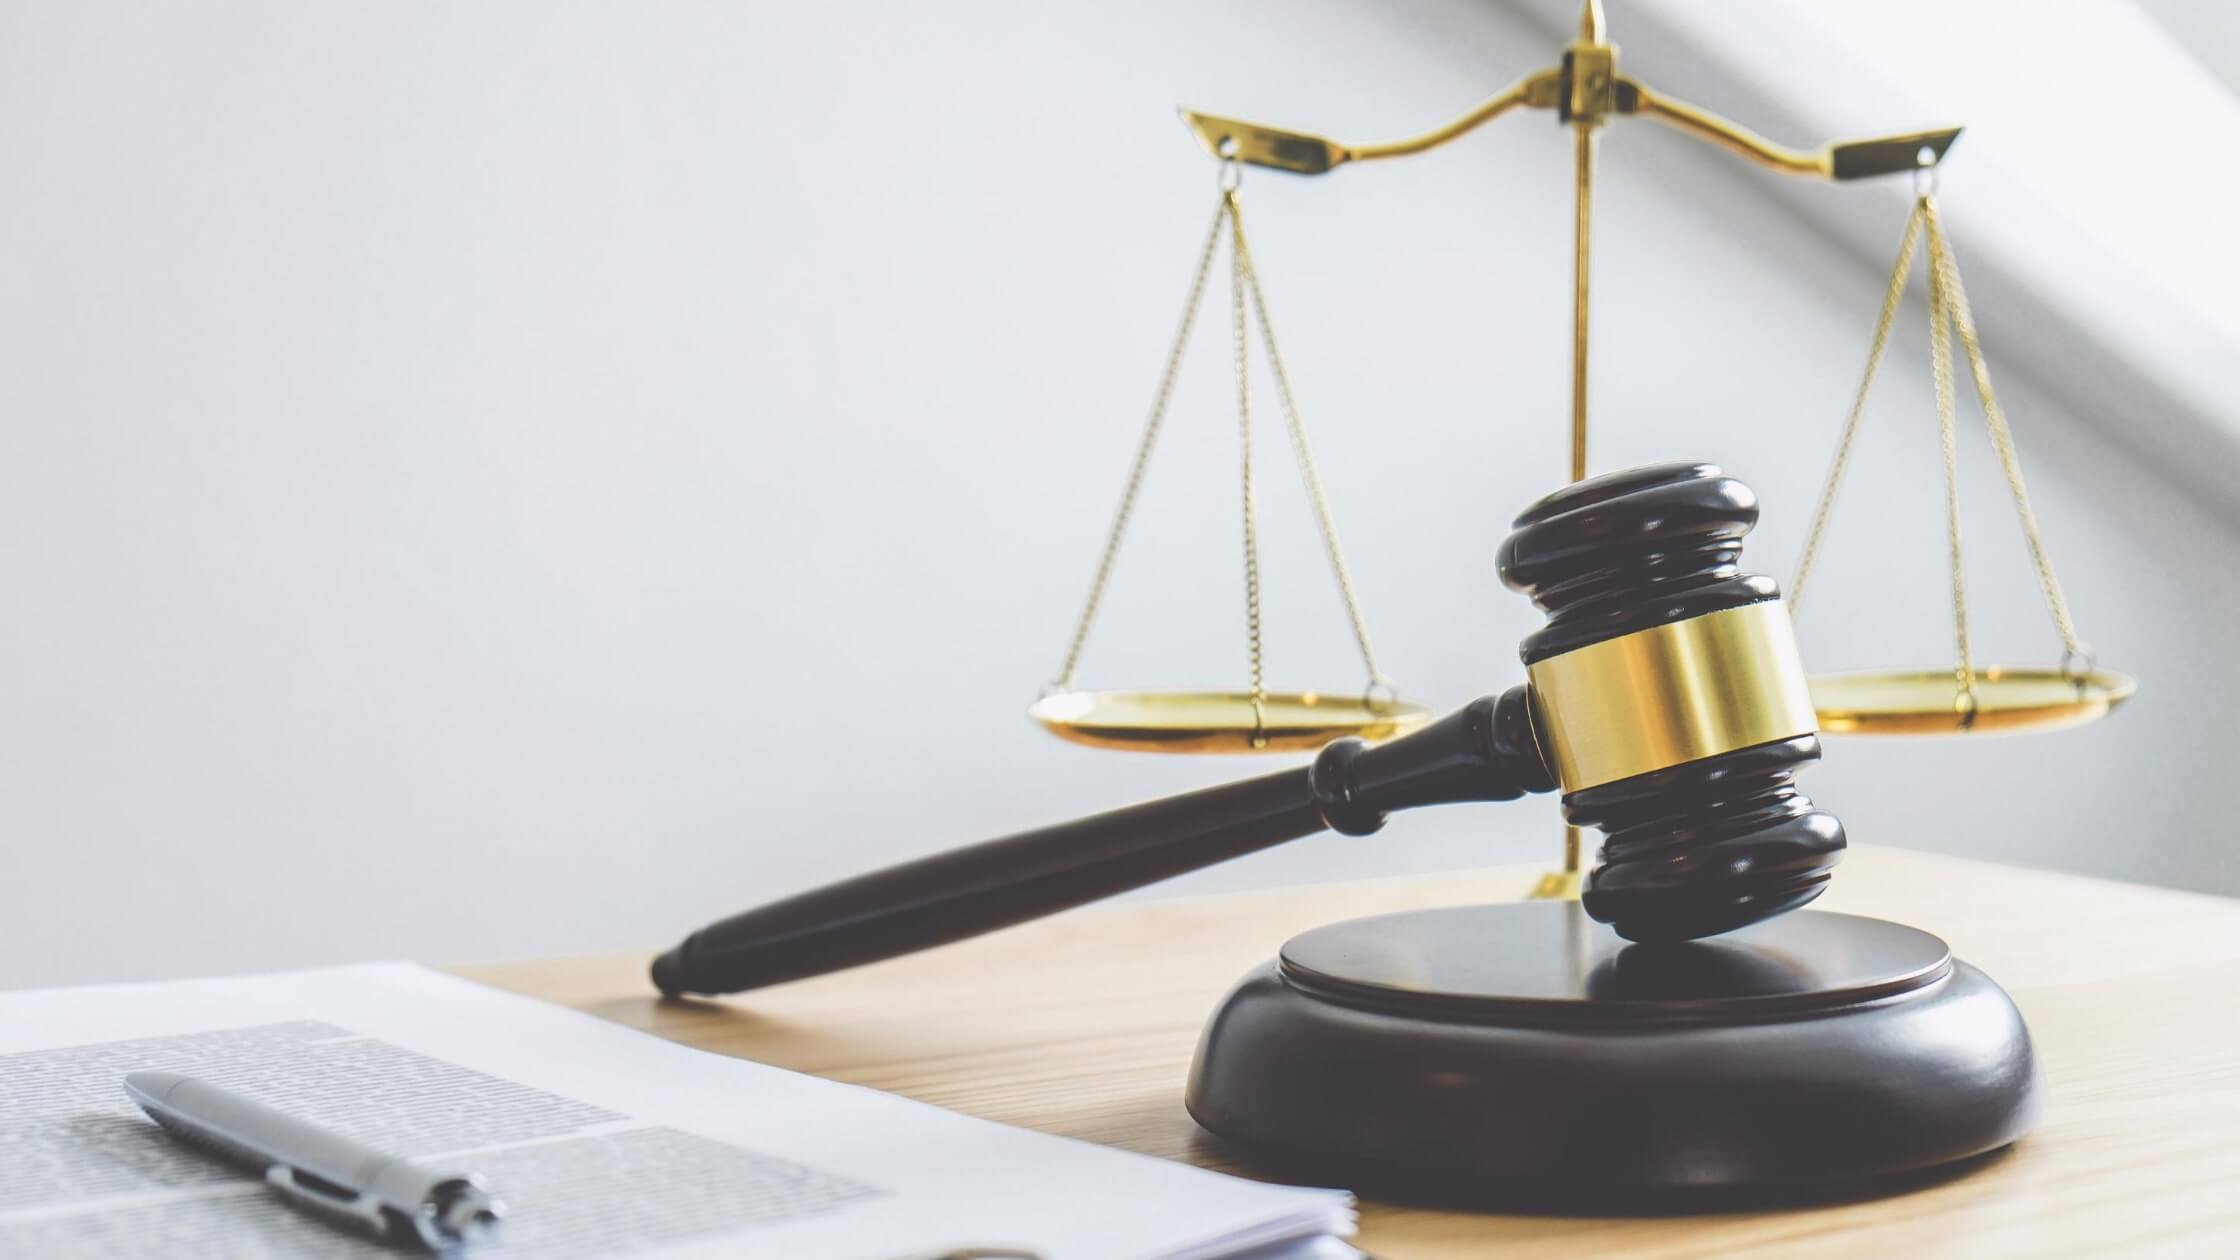 mediation for all disputes concerning lease agreements of 1995 and prior